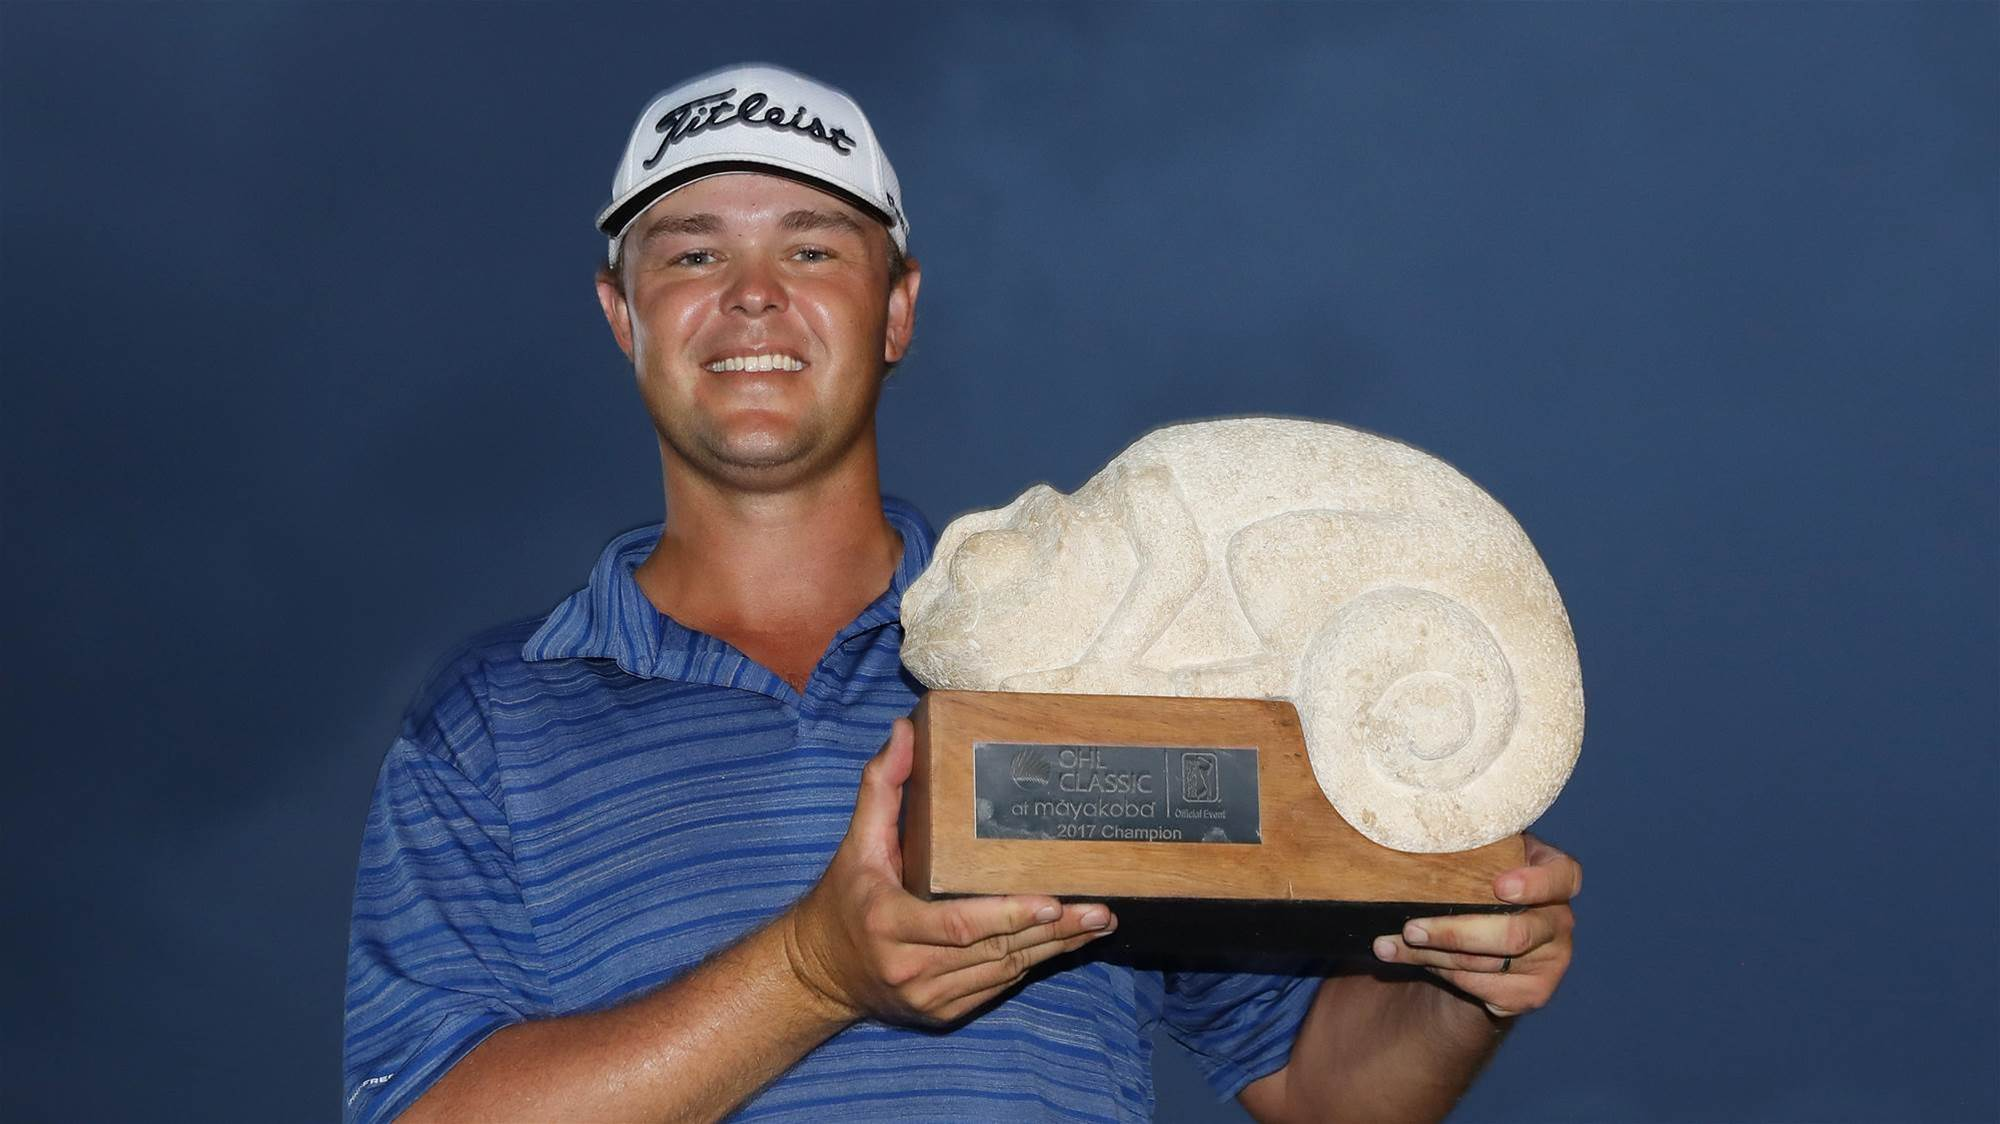 PGA TOUR: Kizzire outlasts Fowler to breakthrough in Mexico